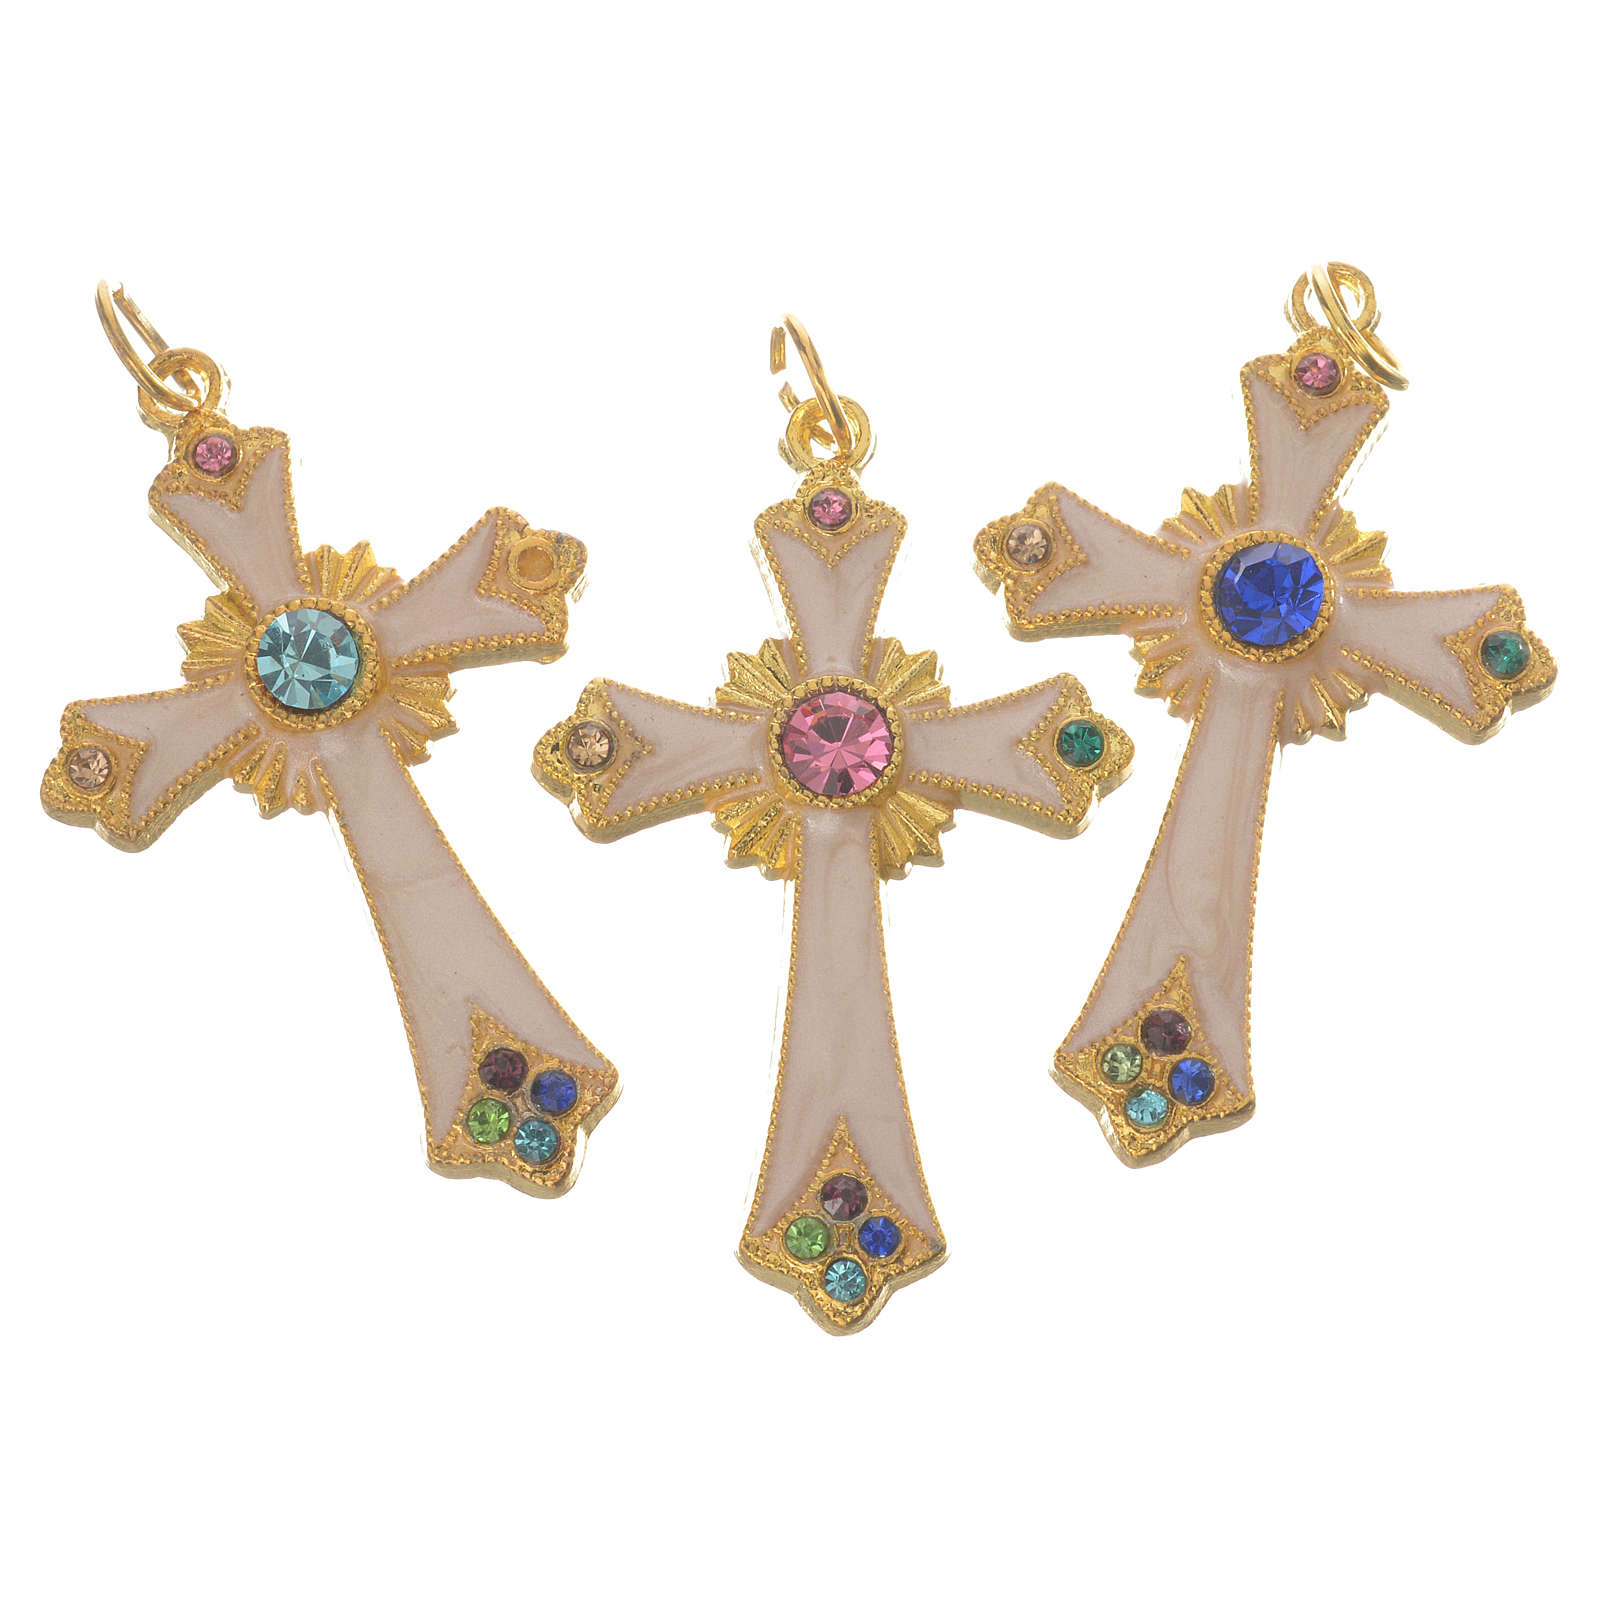 Pendant cross in gold metal 4